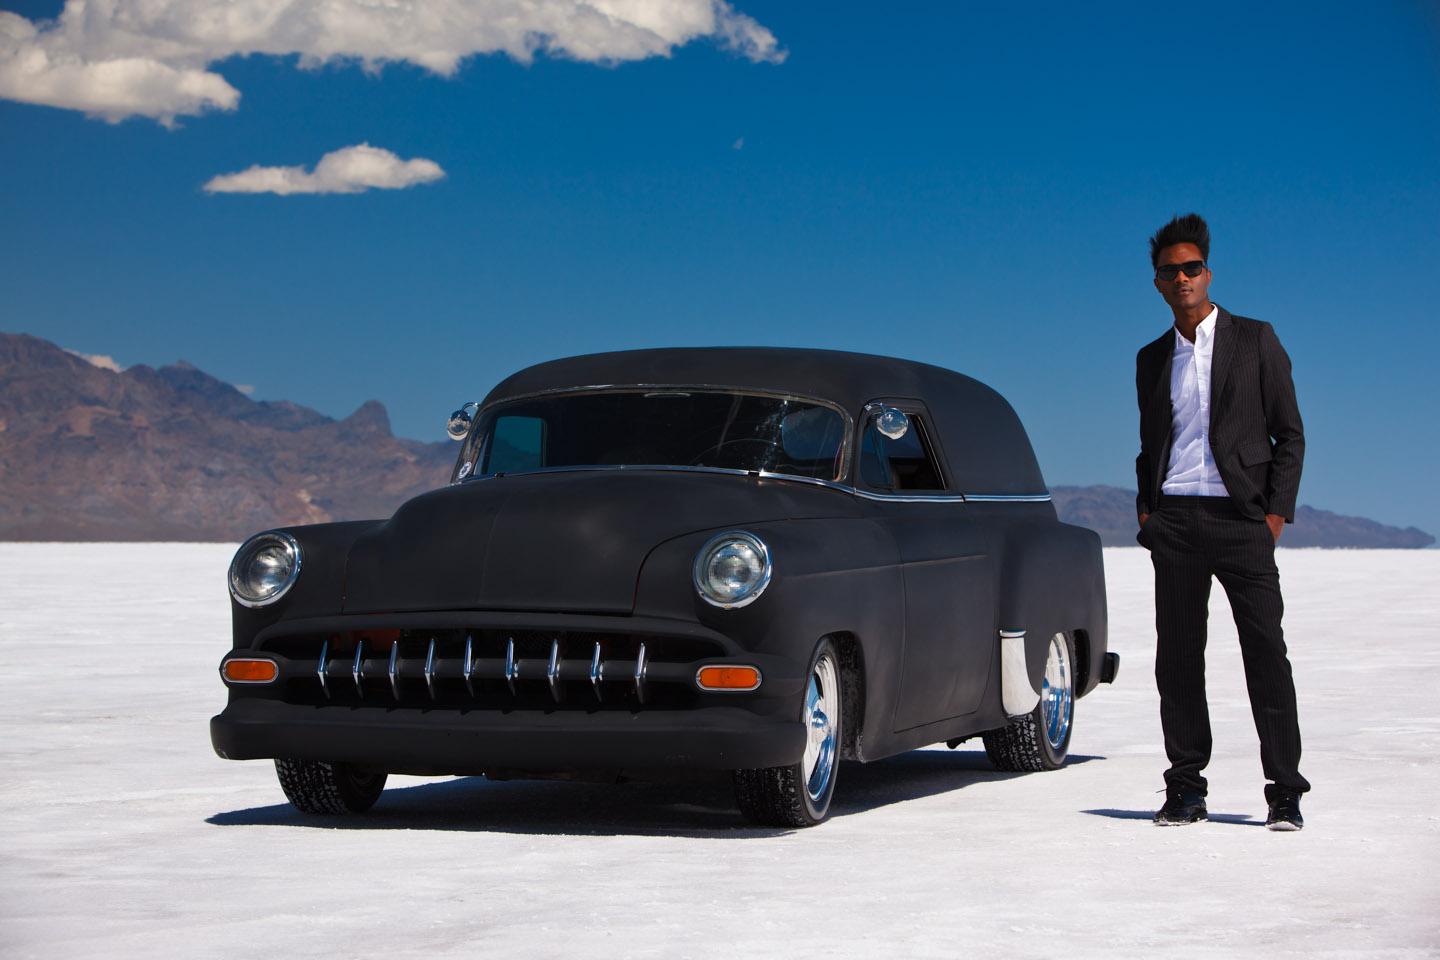 A classic car lets us use it for a shot or two.